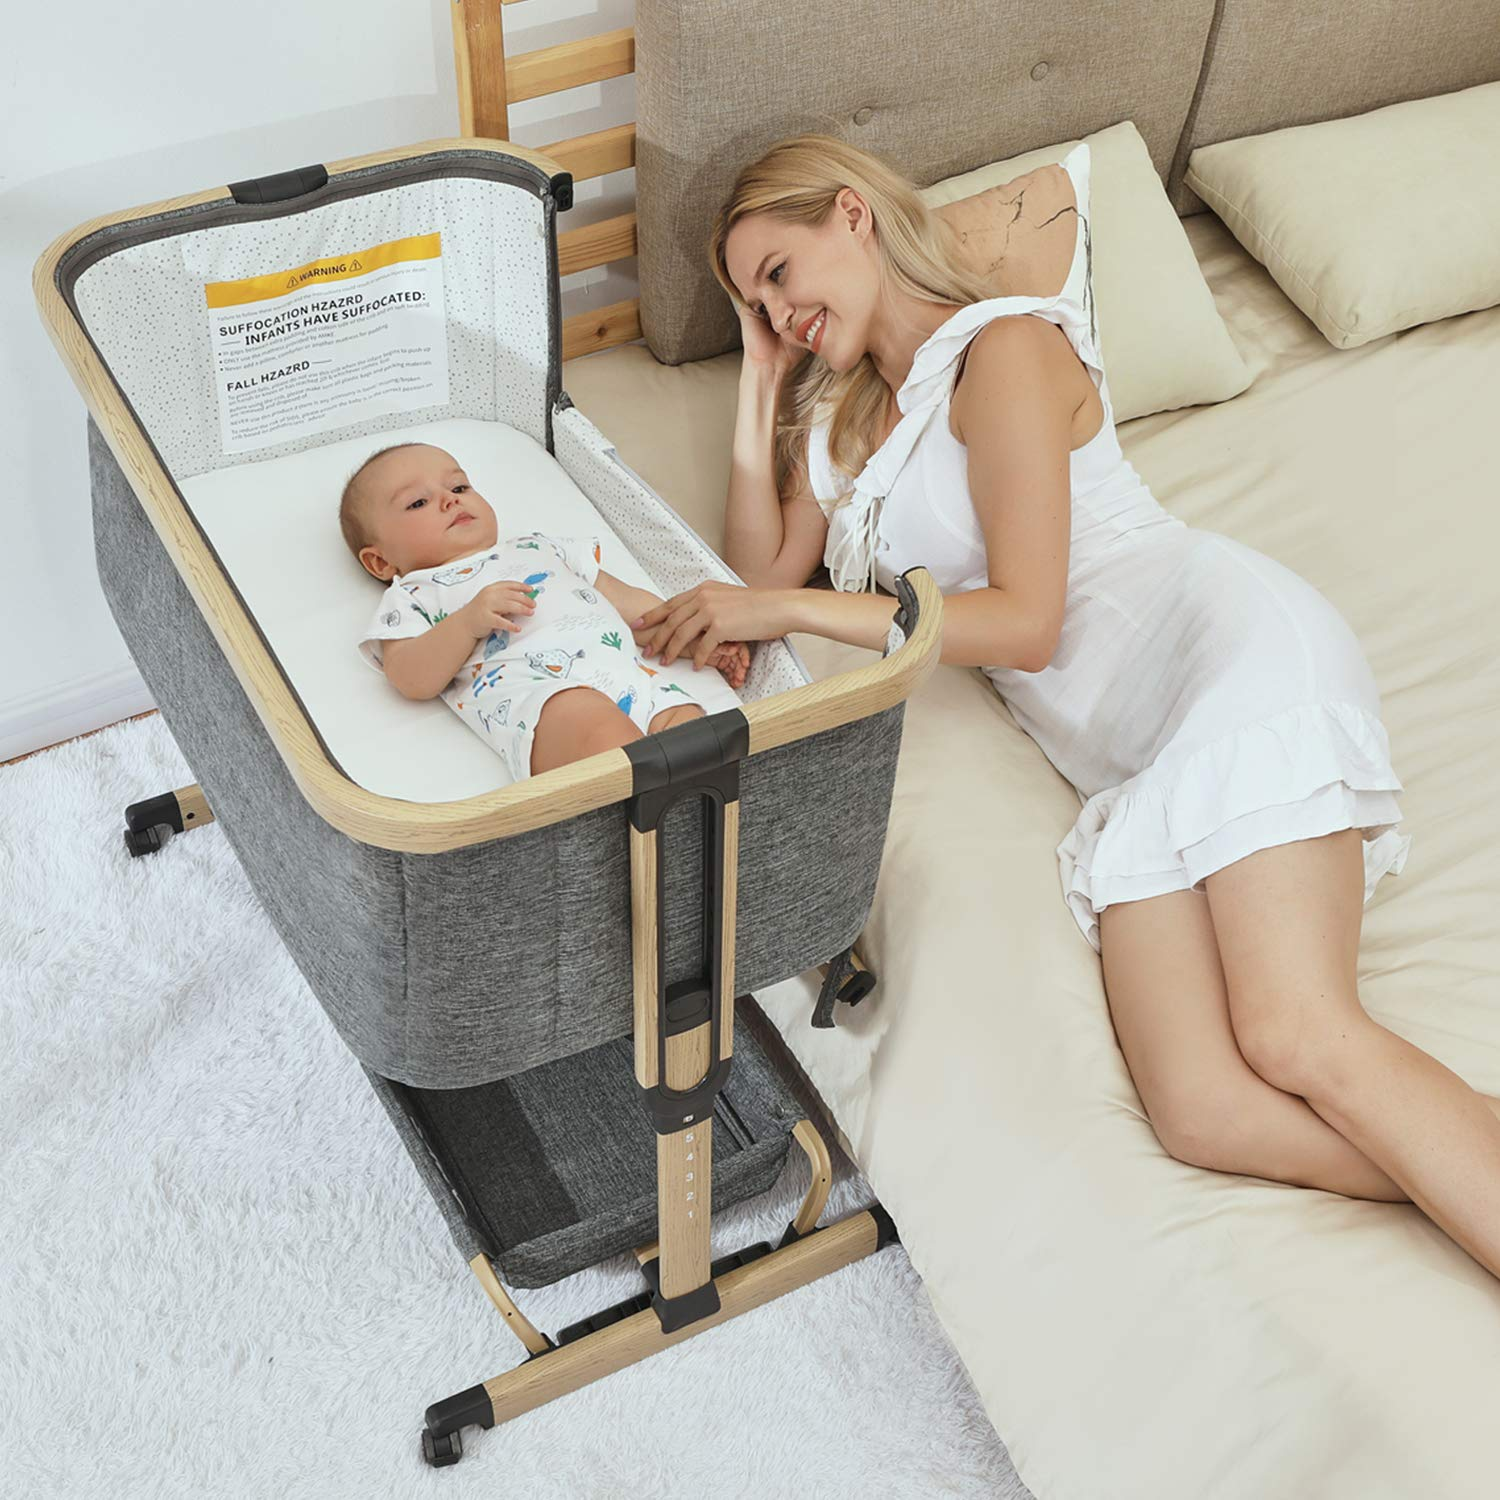 Amke 3 In 1 Baby Bassinets Baby Bedside Sleeper Baby Crib With Storage Basket For Newborn Arms Reach Co Sleeper Adjustable Portable Baby Bed Bedside Bassinet Comfy Mattress Travel Bag Included Walmart Com